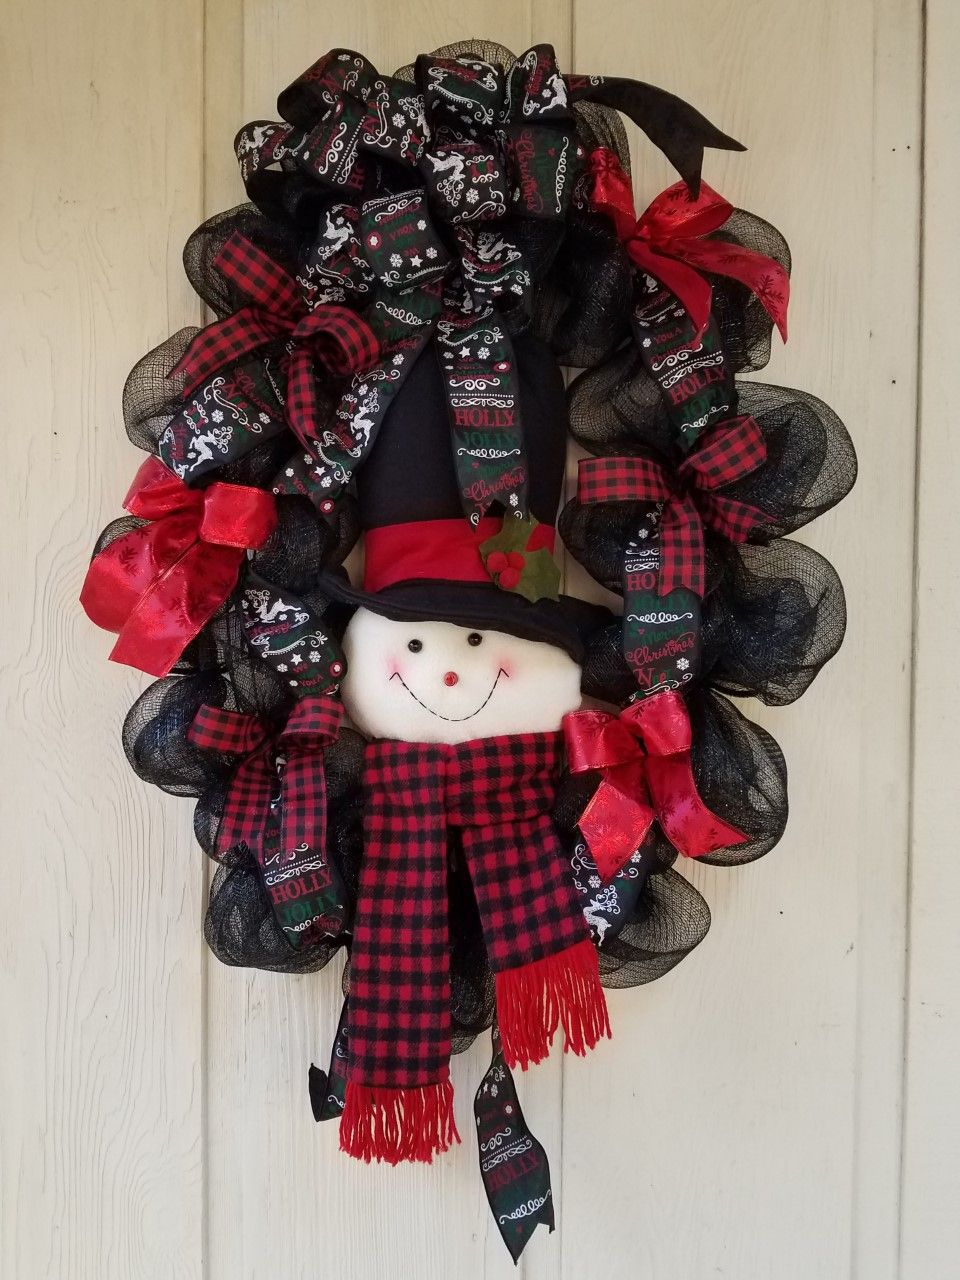 Adorable Black And Red Snowman Wreath With Buffalo Plaid For Sale By Honeypot Junction Snowman Wreath Wreaths Christmas Wreaths